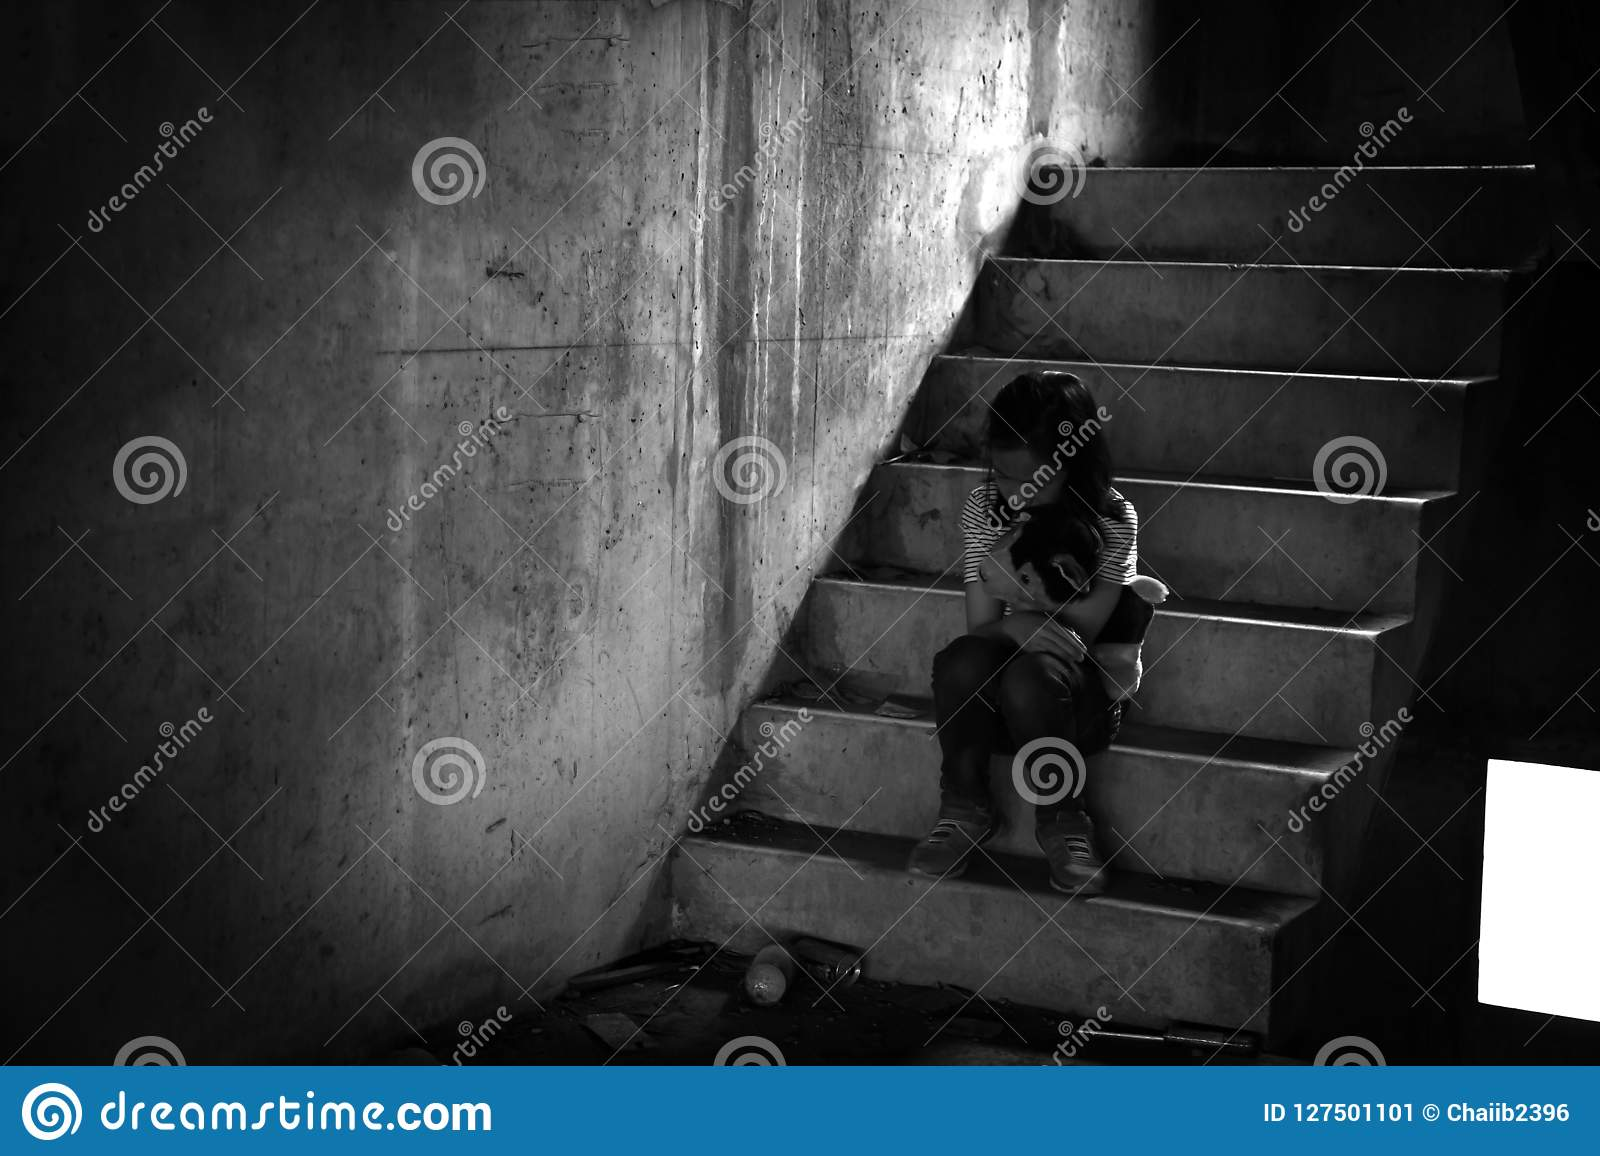 Depressed young girl sitting alone in an abandoned building